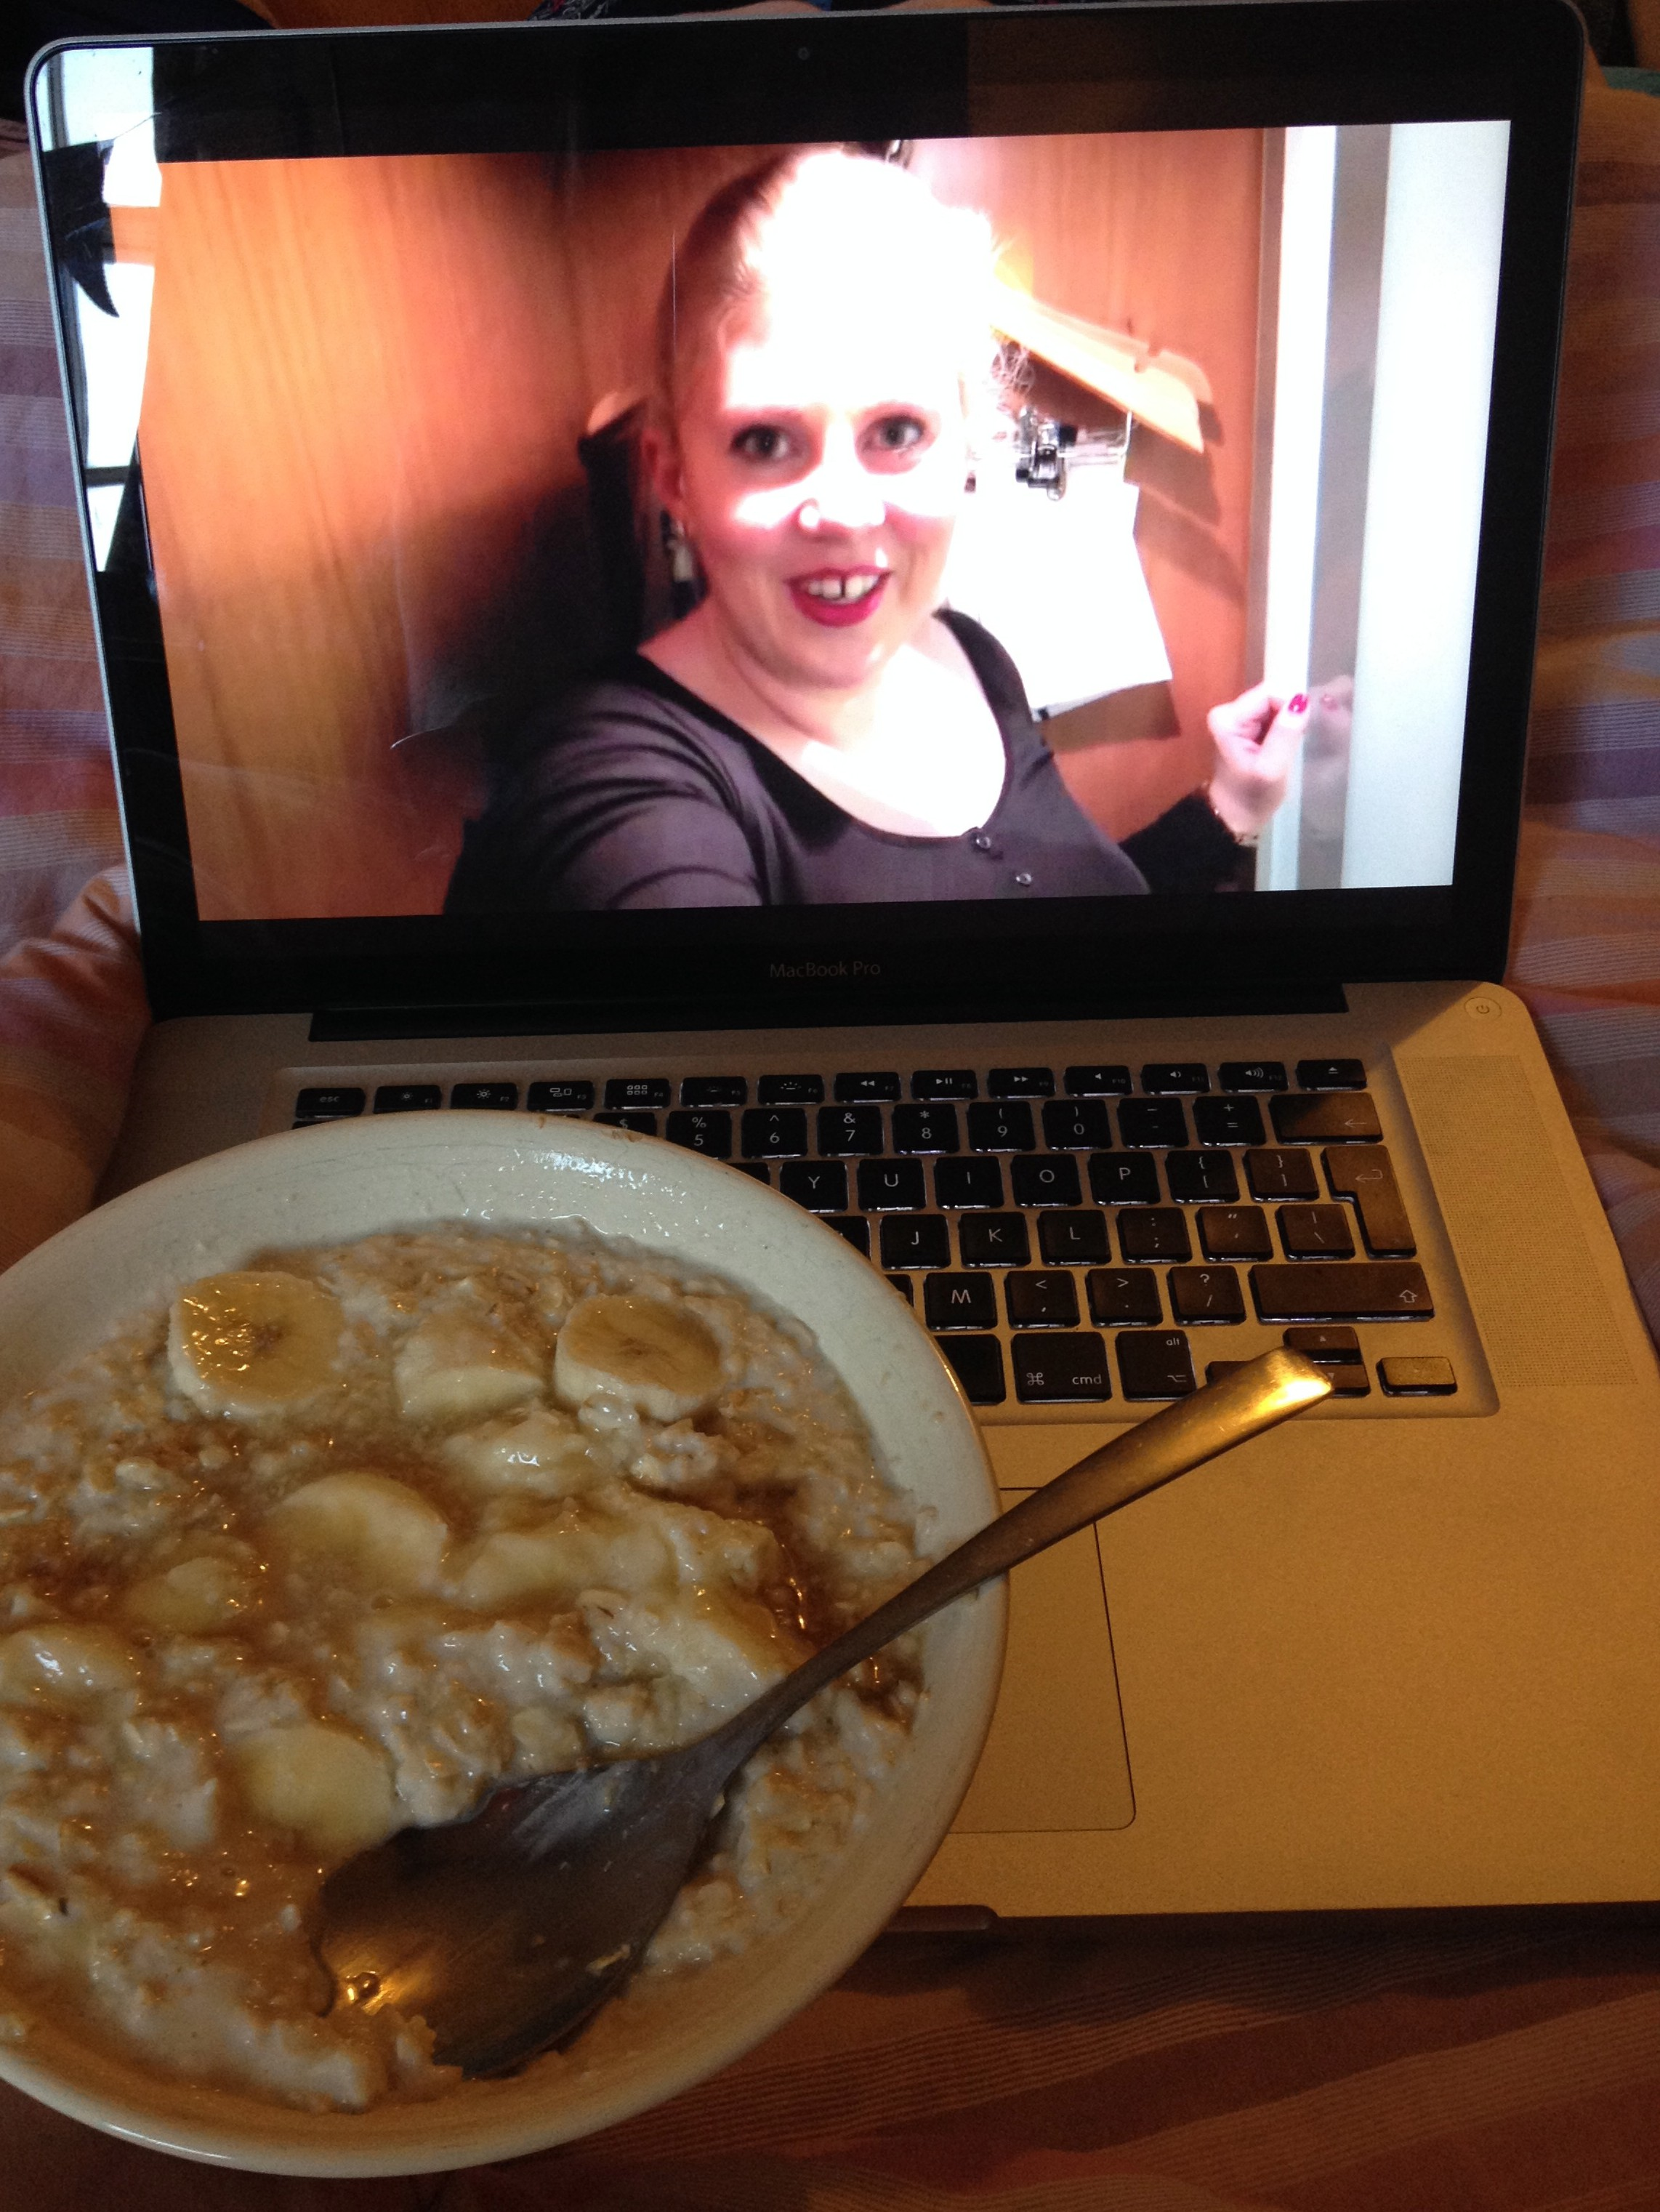 Eating honey and banana porridge while watching Youtube videos